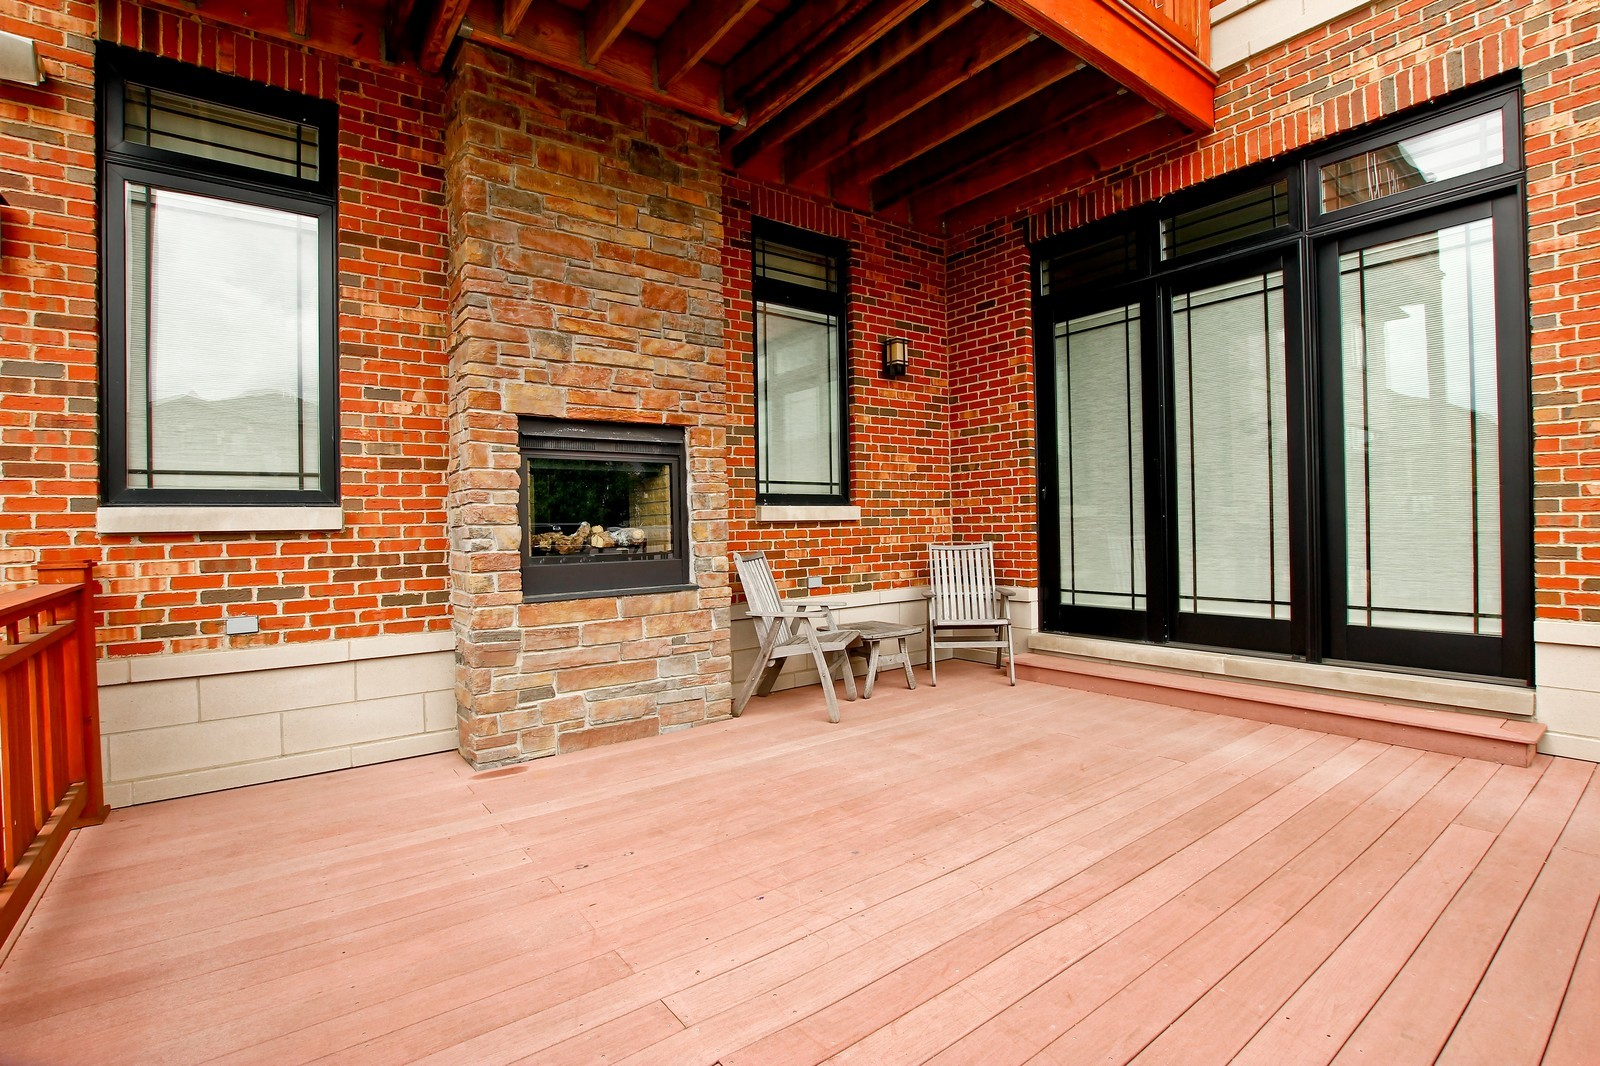 Real Estate Photography - 444 W. 38th Street, Chicago, IL, 60609 - Rear View